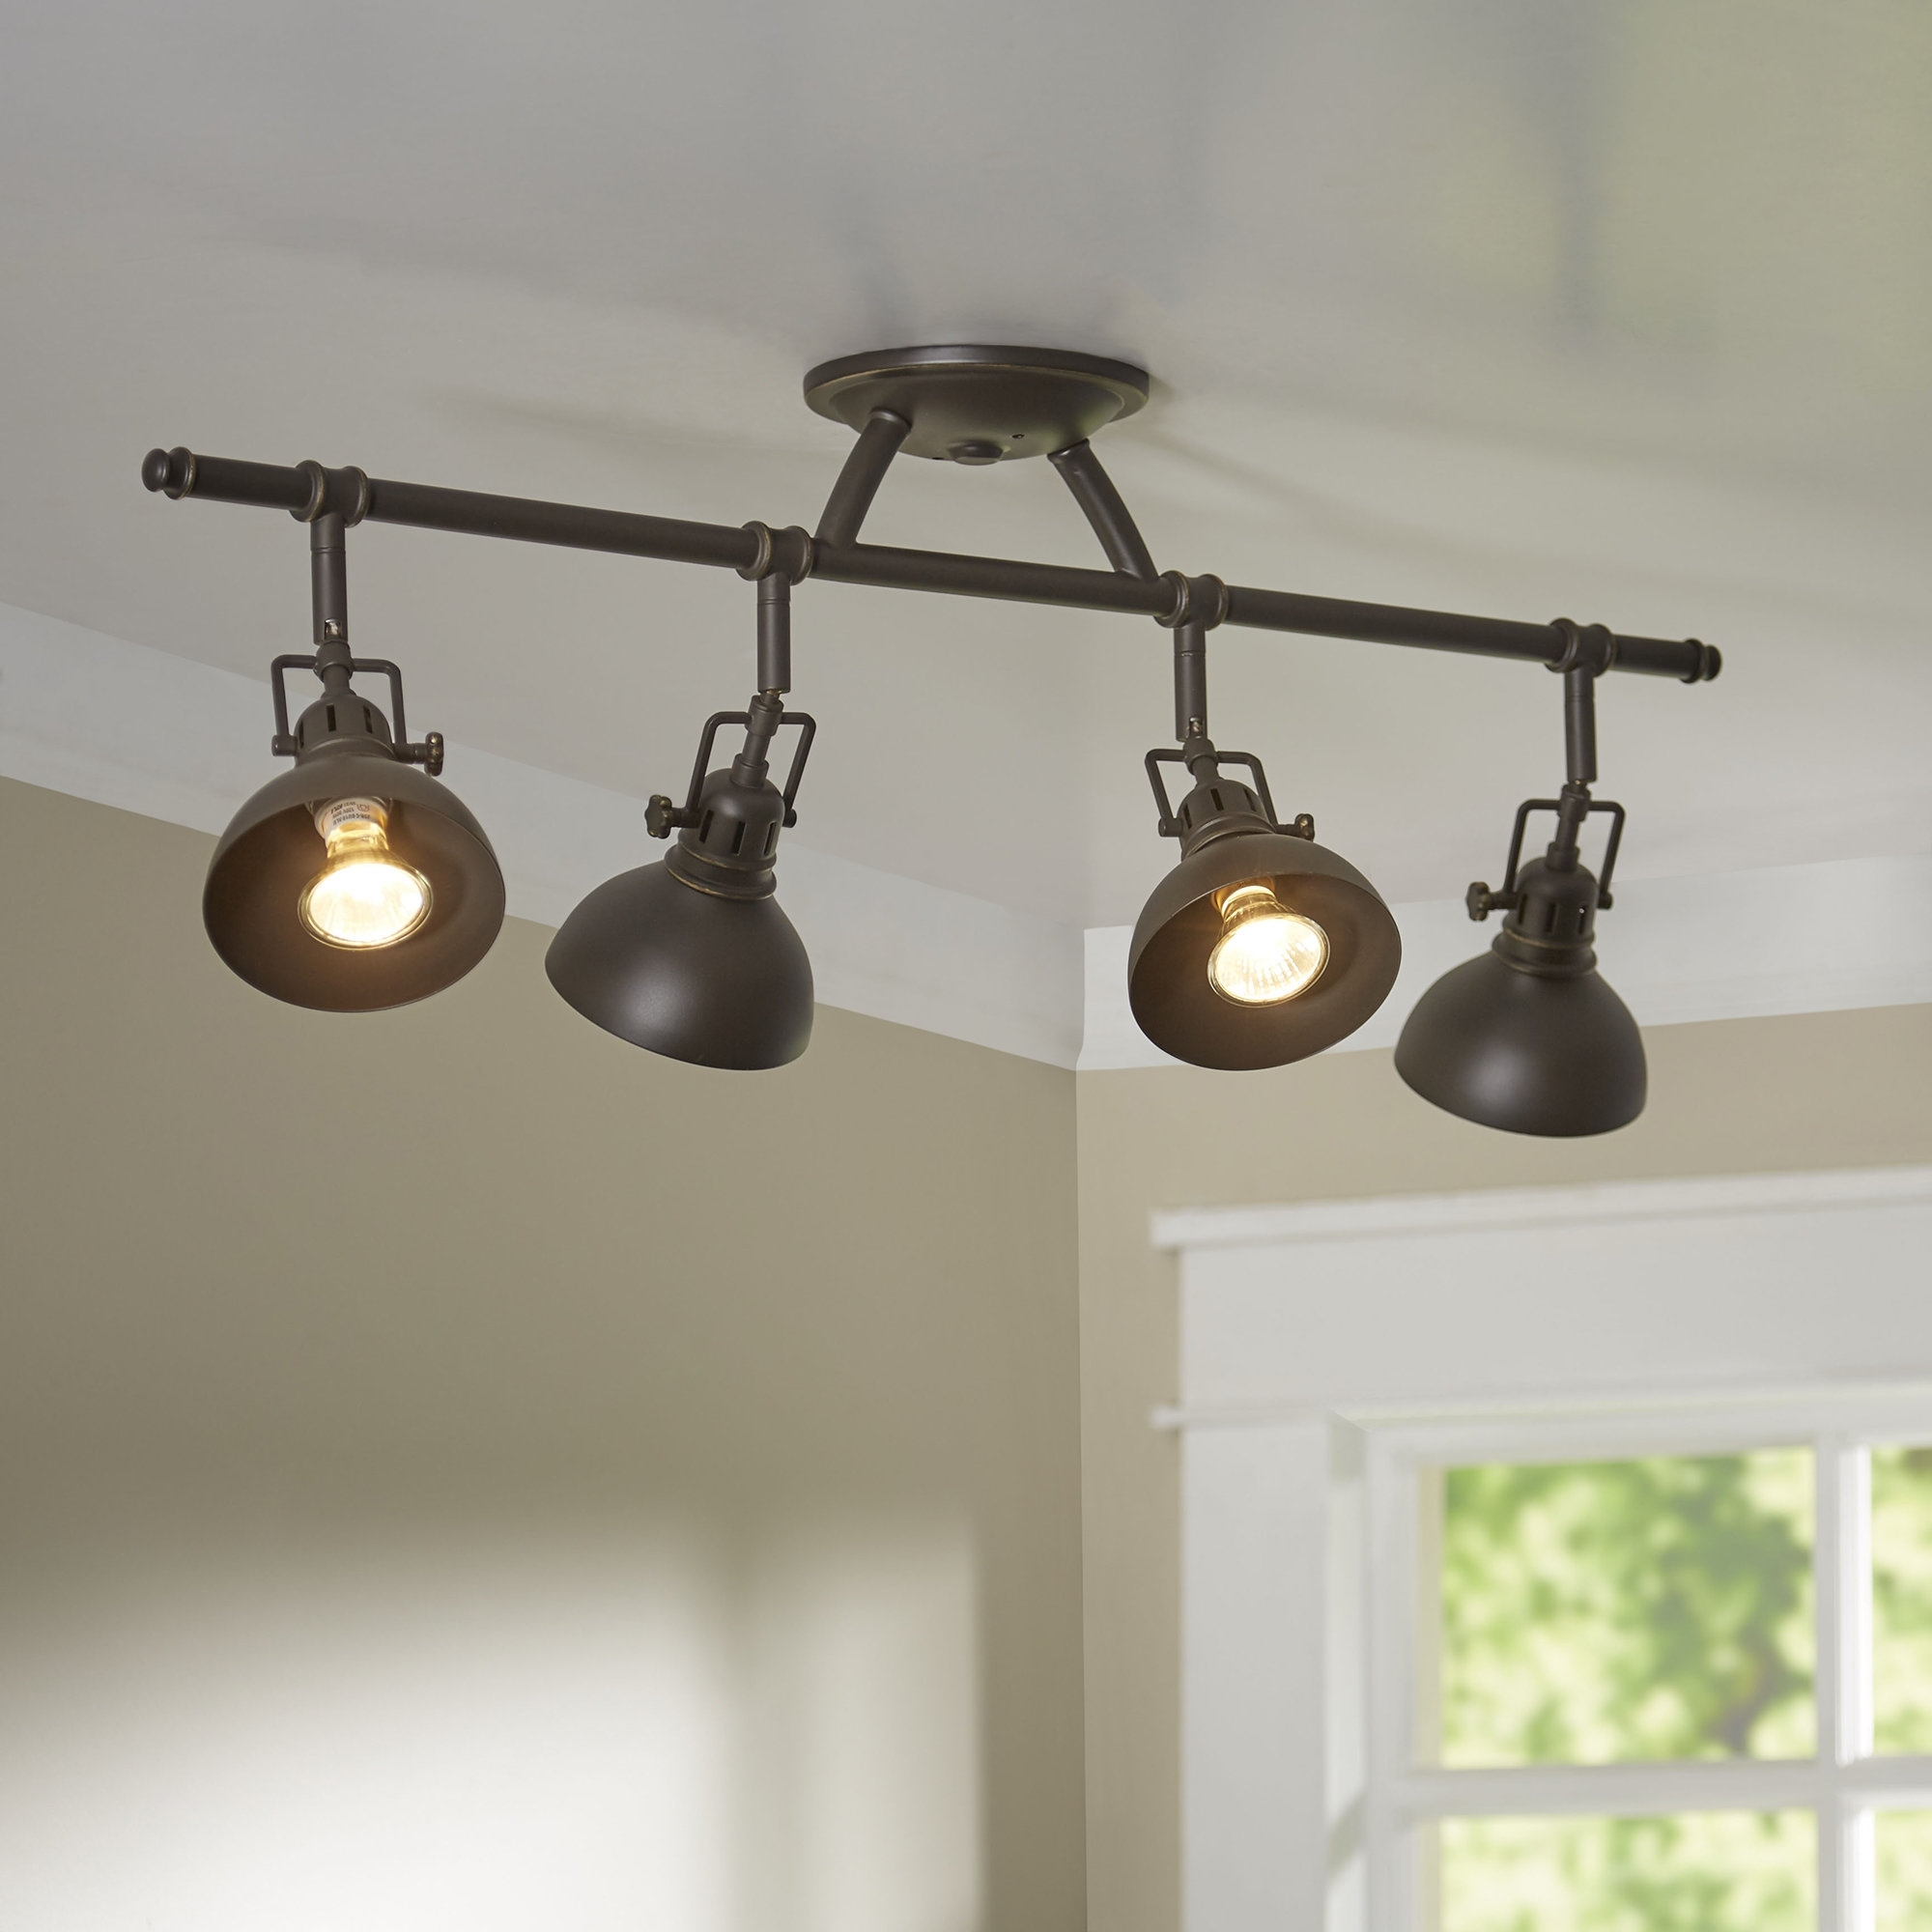 Most Popular Contemporary Rustic Outdoor Lighting At Wayfair Intended For Track Lighting You'll Love (View 11 of 20)